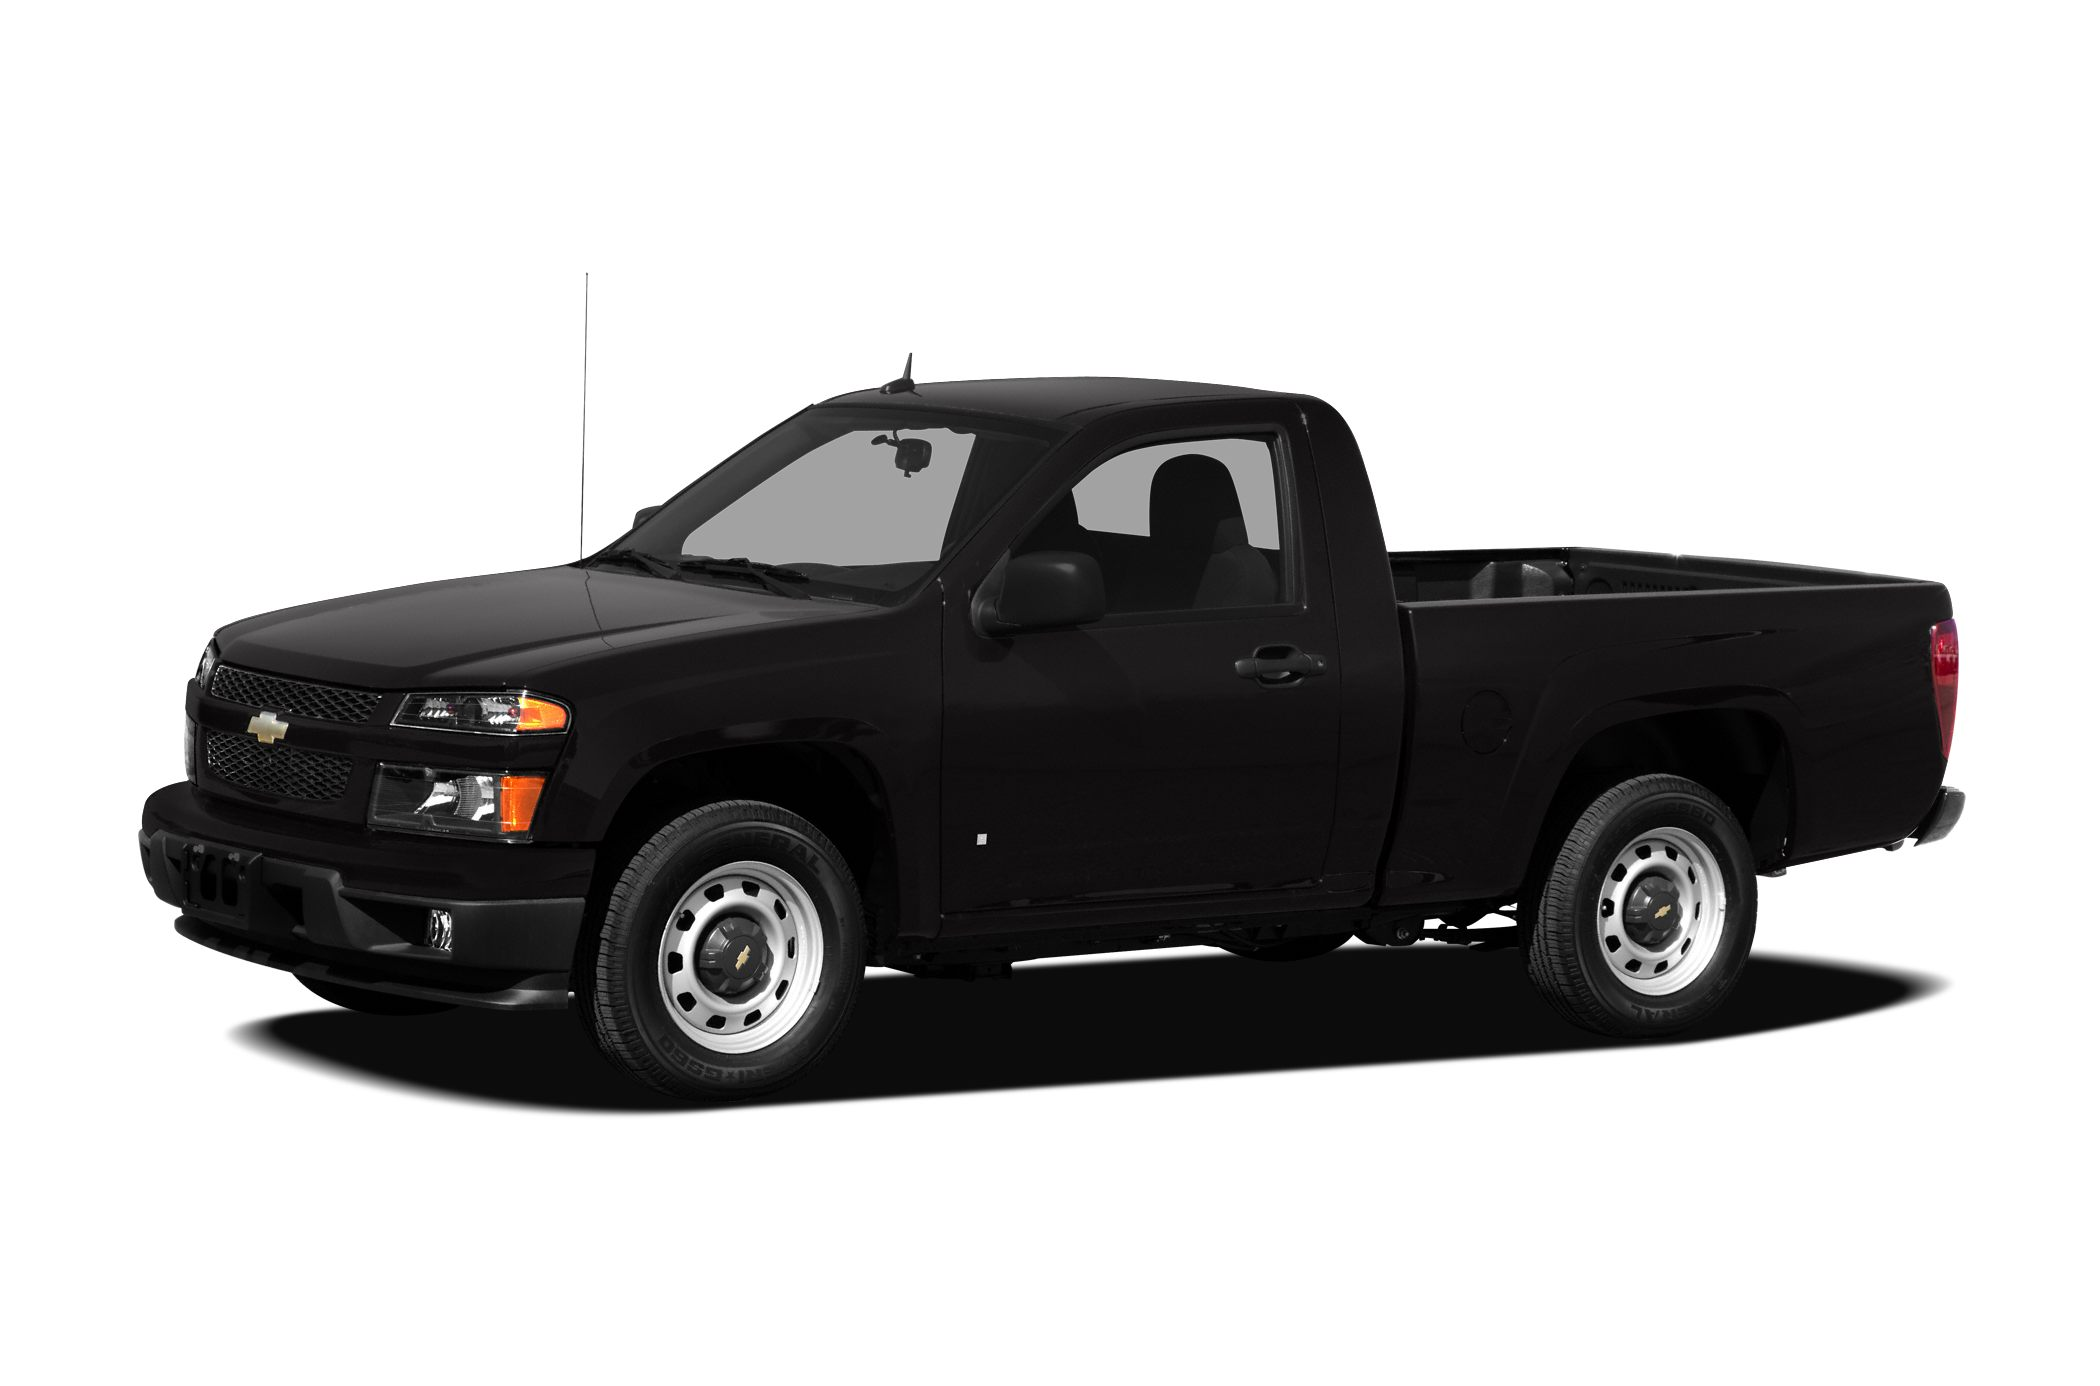 2010 Chevrolet Colorado Work Truck Extended Cab Pickup for sale in Hannibal for $0 with 74,223 miles